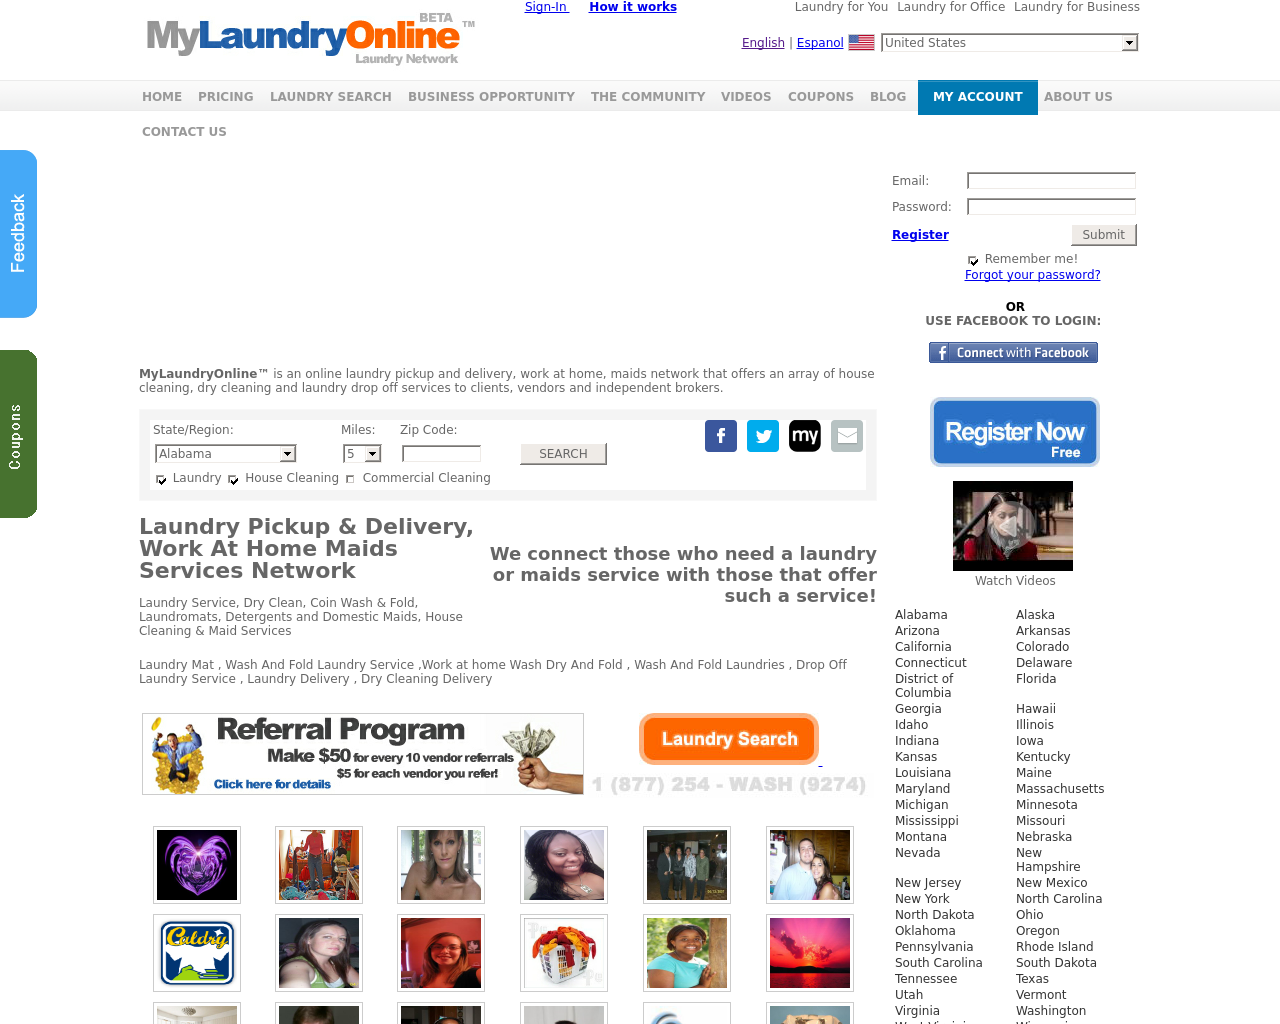 MyLaundryOnline-Advertising-Reviews-Pricing